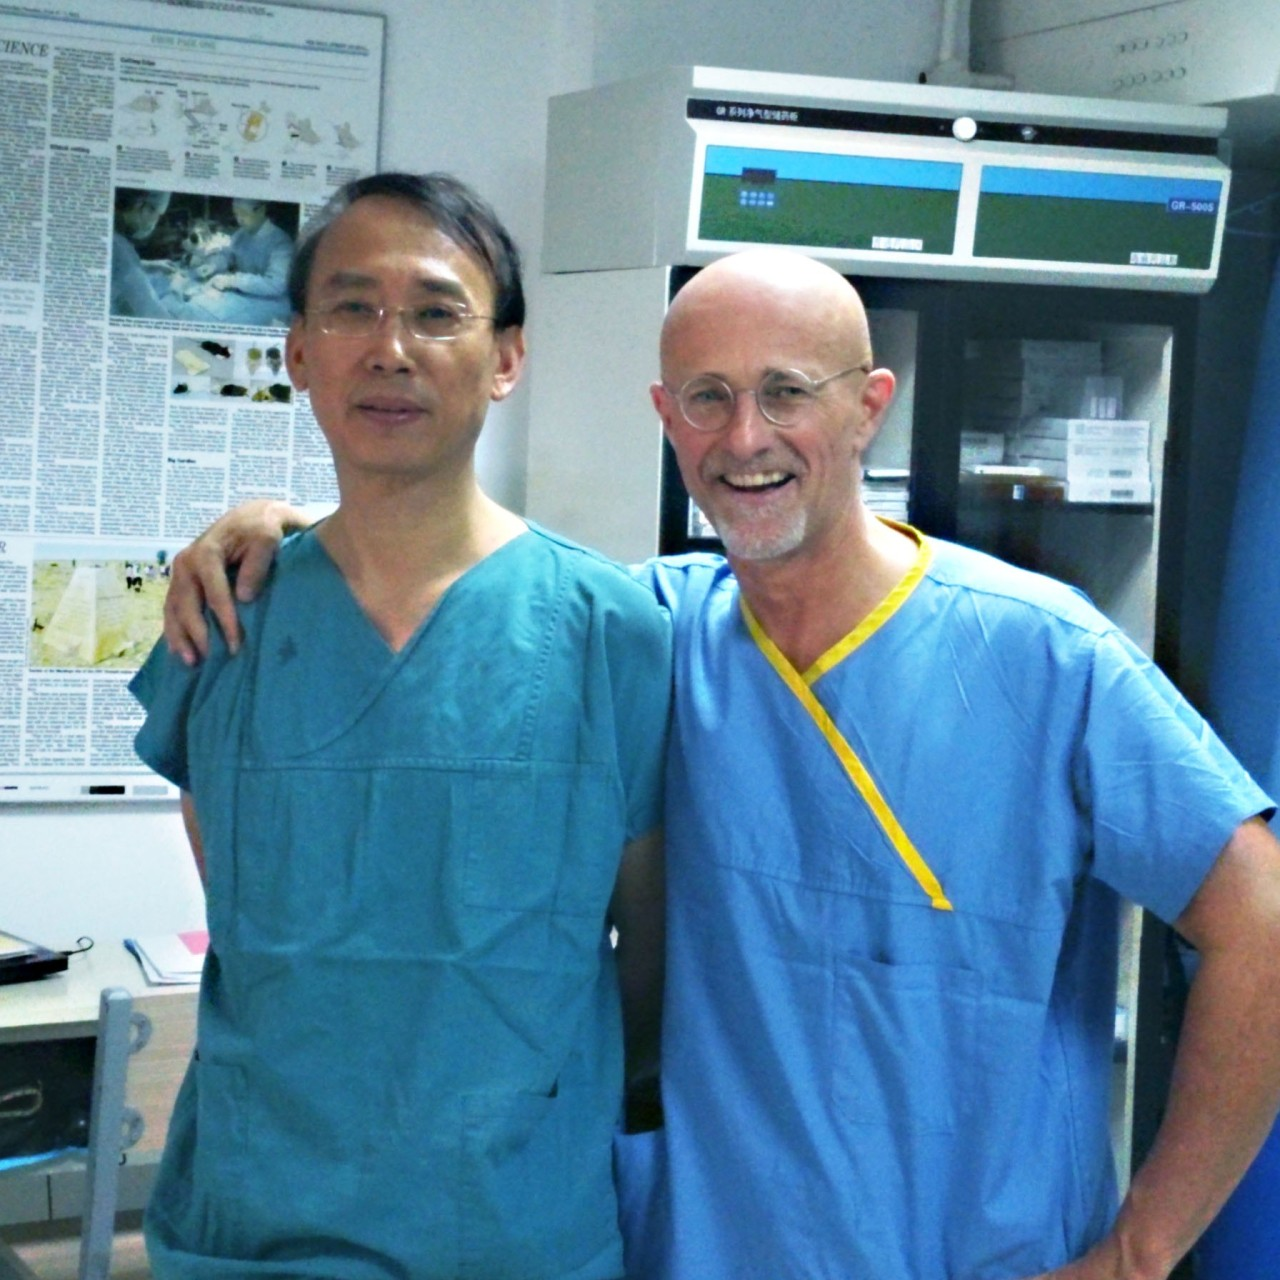 Head transplant breakthrough claimed: doctors Ren Xiaoping and